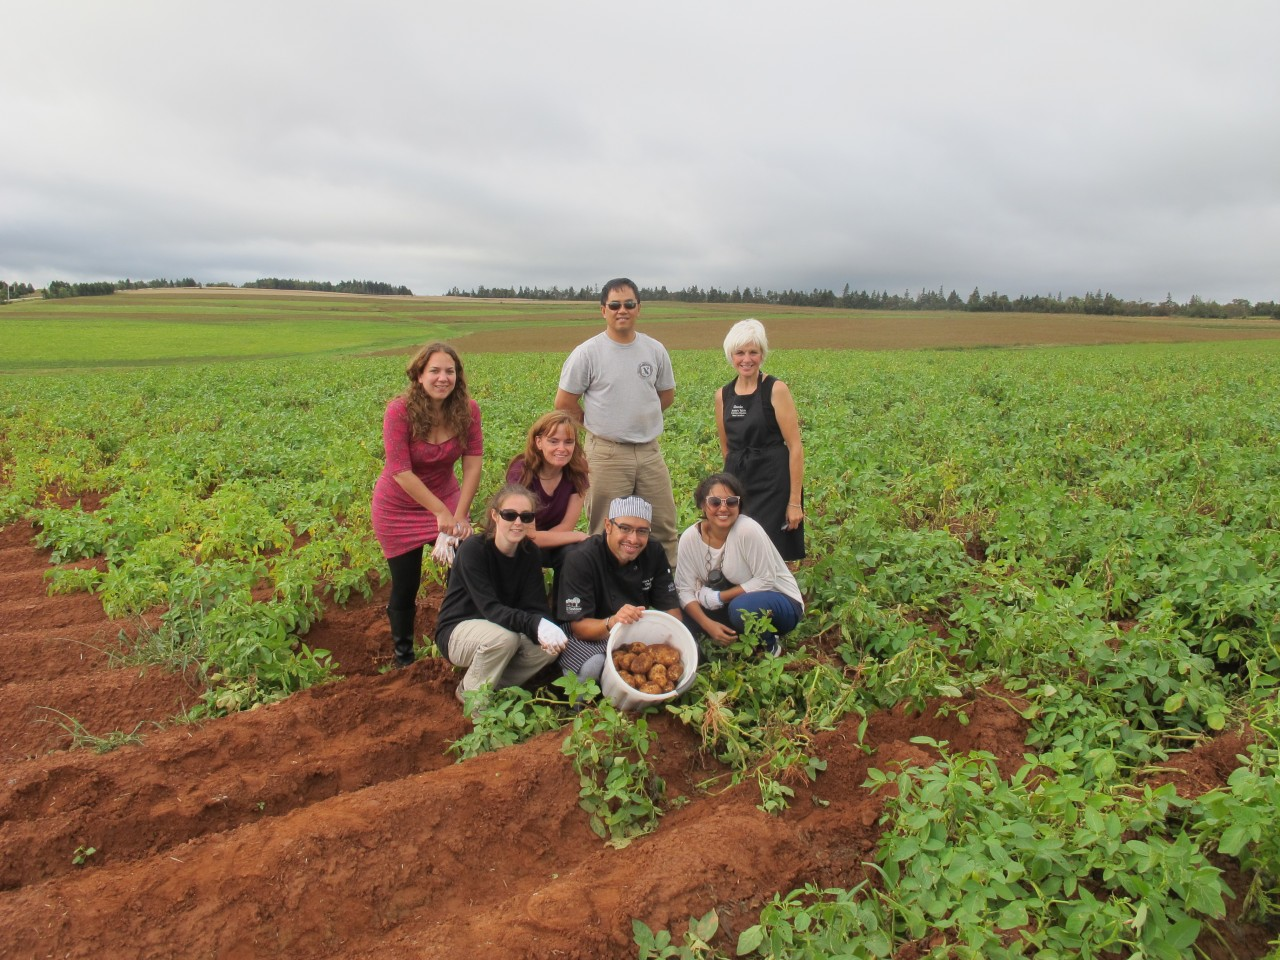 Bucket List Item #102: Learn to pick & cook potatoes at Annie's Table Cooking School in Prince Edward Island